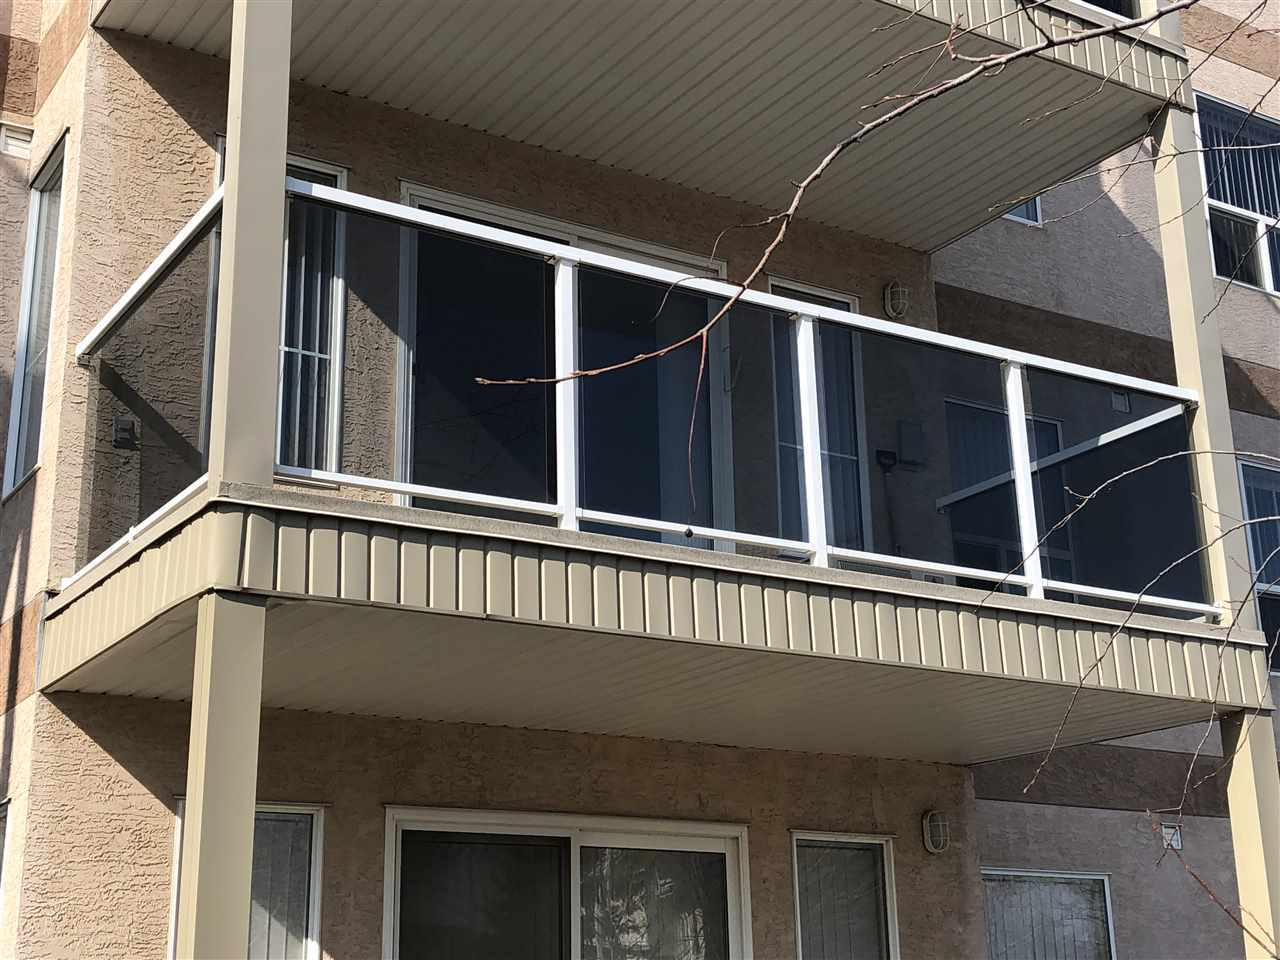 Photo of #232 9704 174 St NW